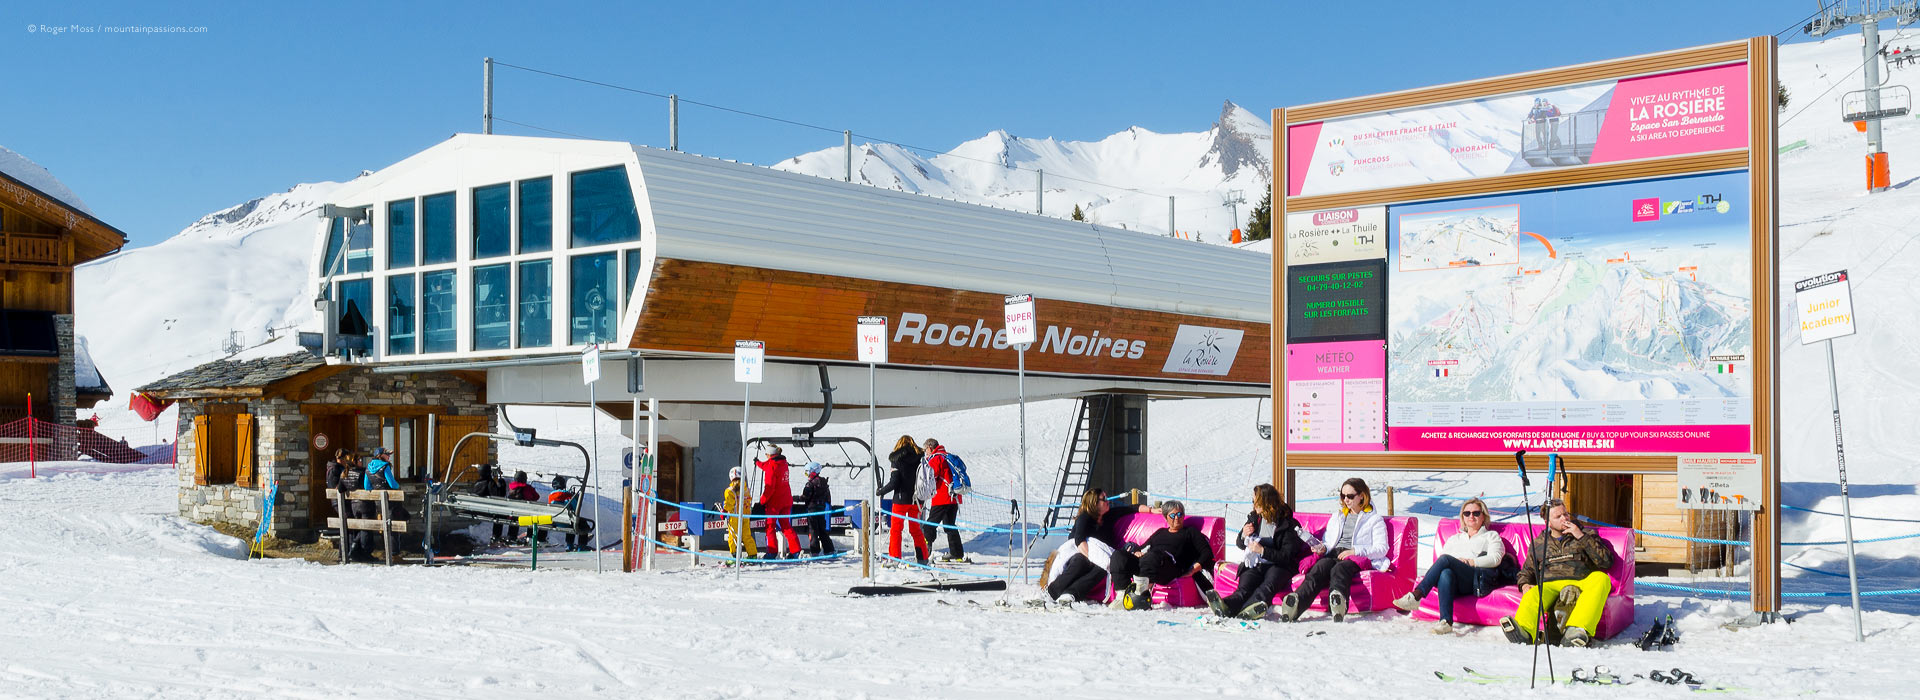 Skiers relaxing around high-speed chair lift at La Rosiere, French Alps